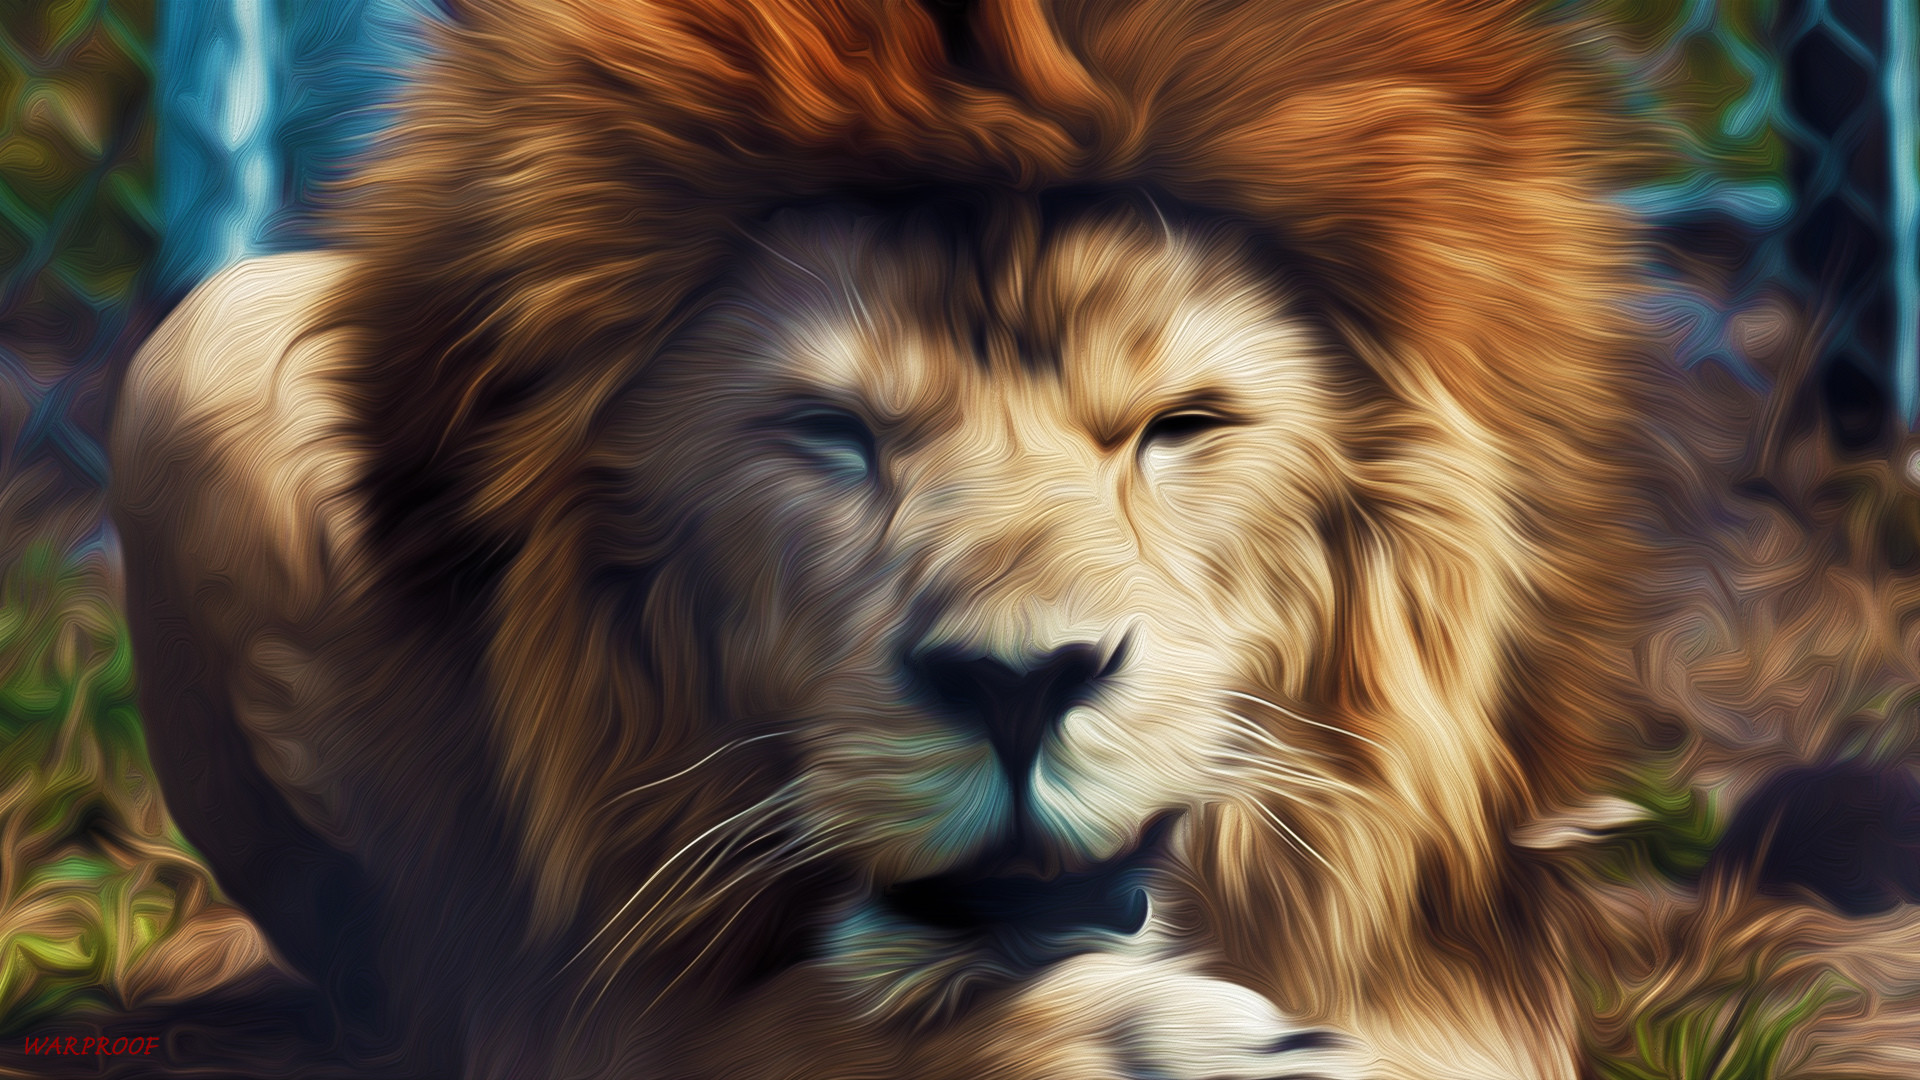 Wallpprs is the world's largest collection of Free HD Lion illustration  Wallpapers.